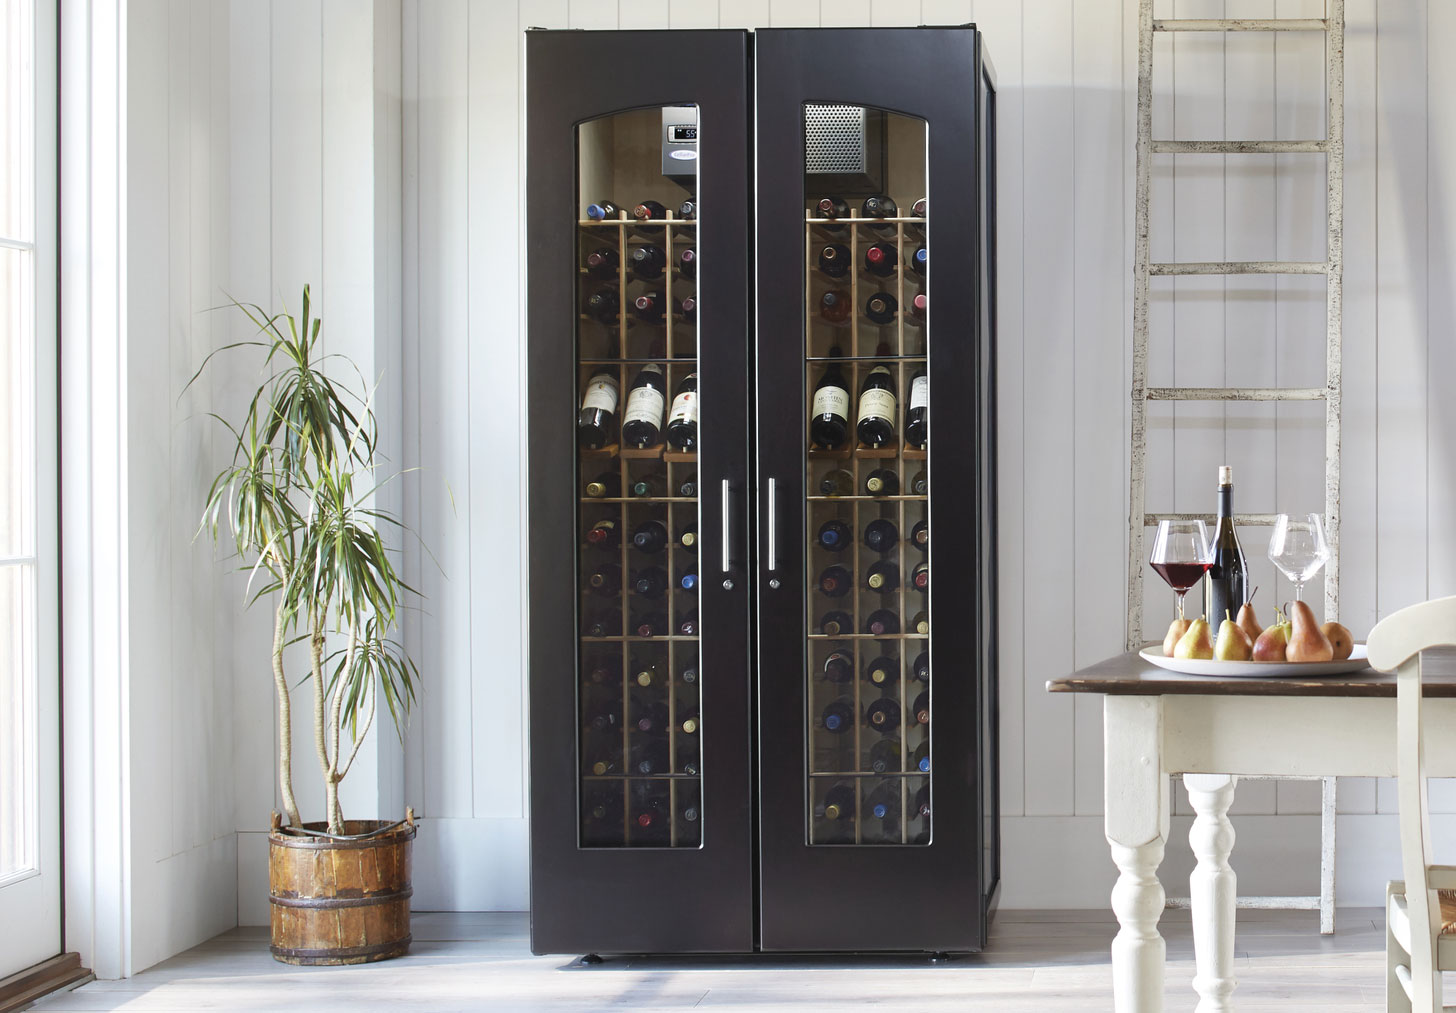 Le Cache Contemporary 2400 Wine Cabinet